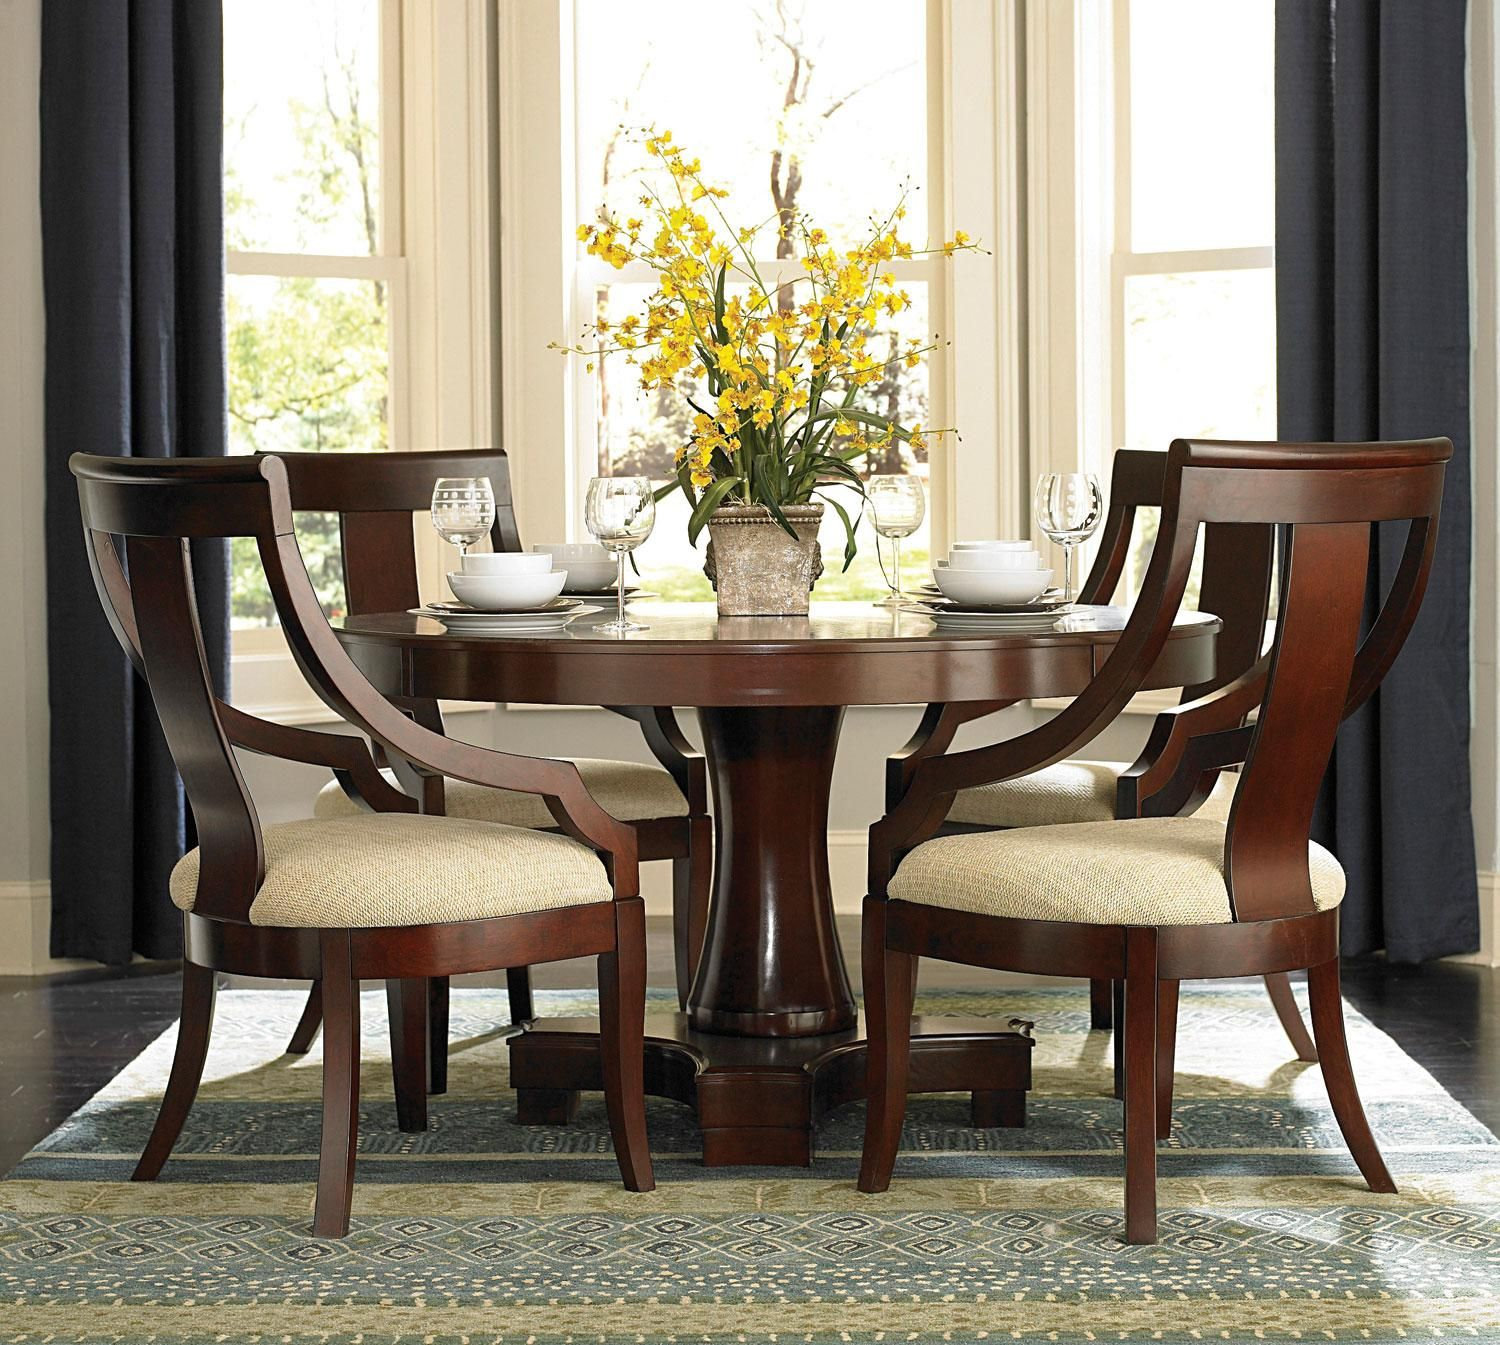 Contemporary Round Dining Room Tables Stunning Transitional Round Dining Table And 6 Chairs  Google Search Inspiration